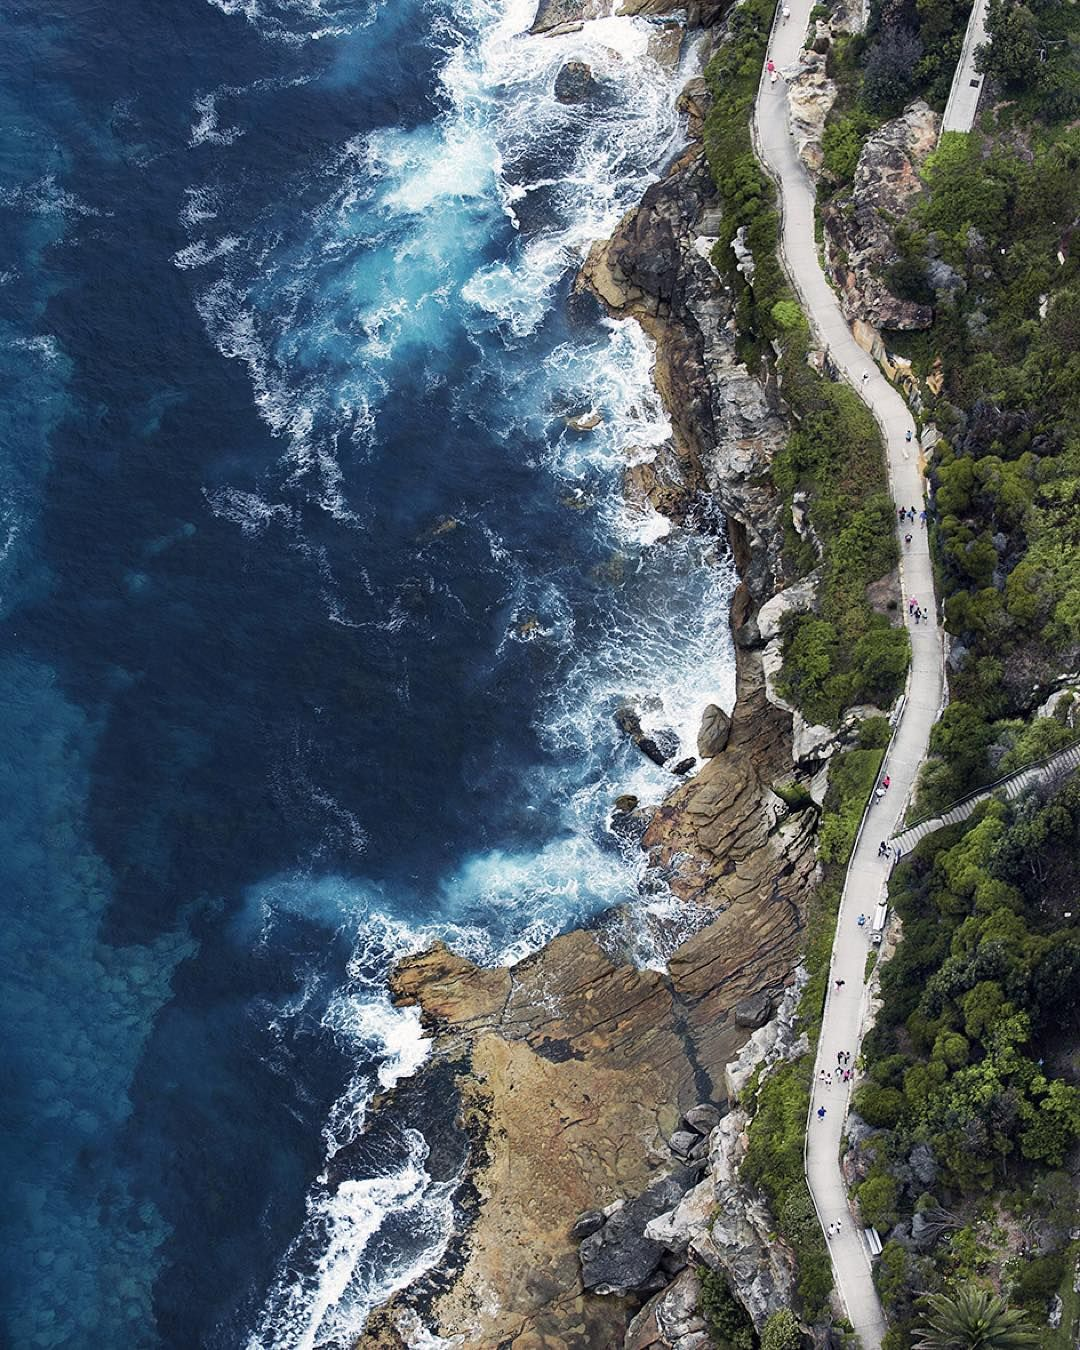 Has anyone walked the Bondi to Bronte coastal path? This was my view of it as I flew over in the chopper!  #aerialphotography #aerialview #aerial #tommyclarke #travel #sydney #bondi #bronte #bonditobronte #nodrone #helicopter by tommy.clarke http://ift.tt/1KBxVYg